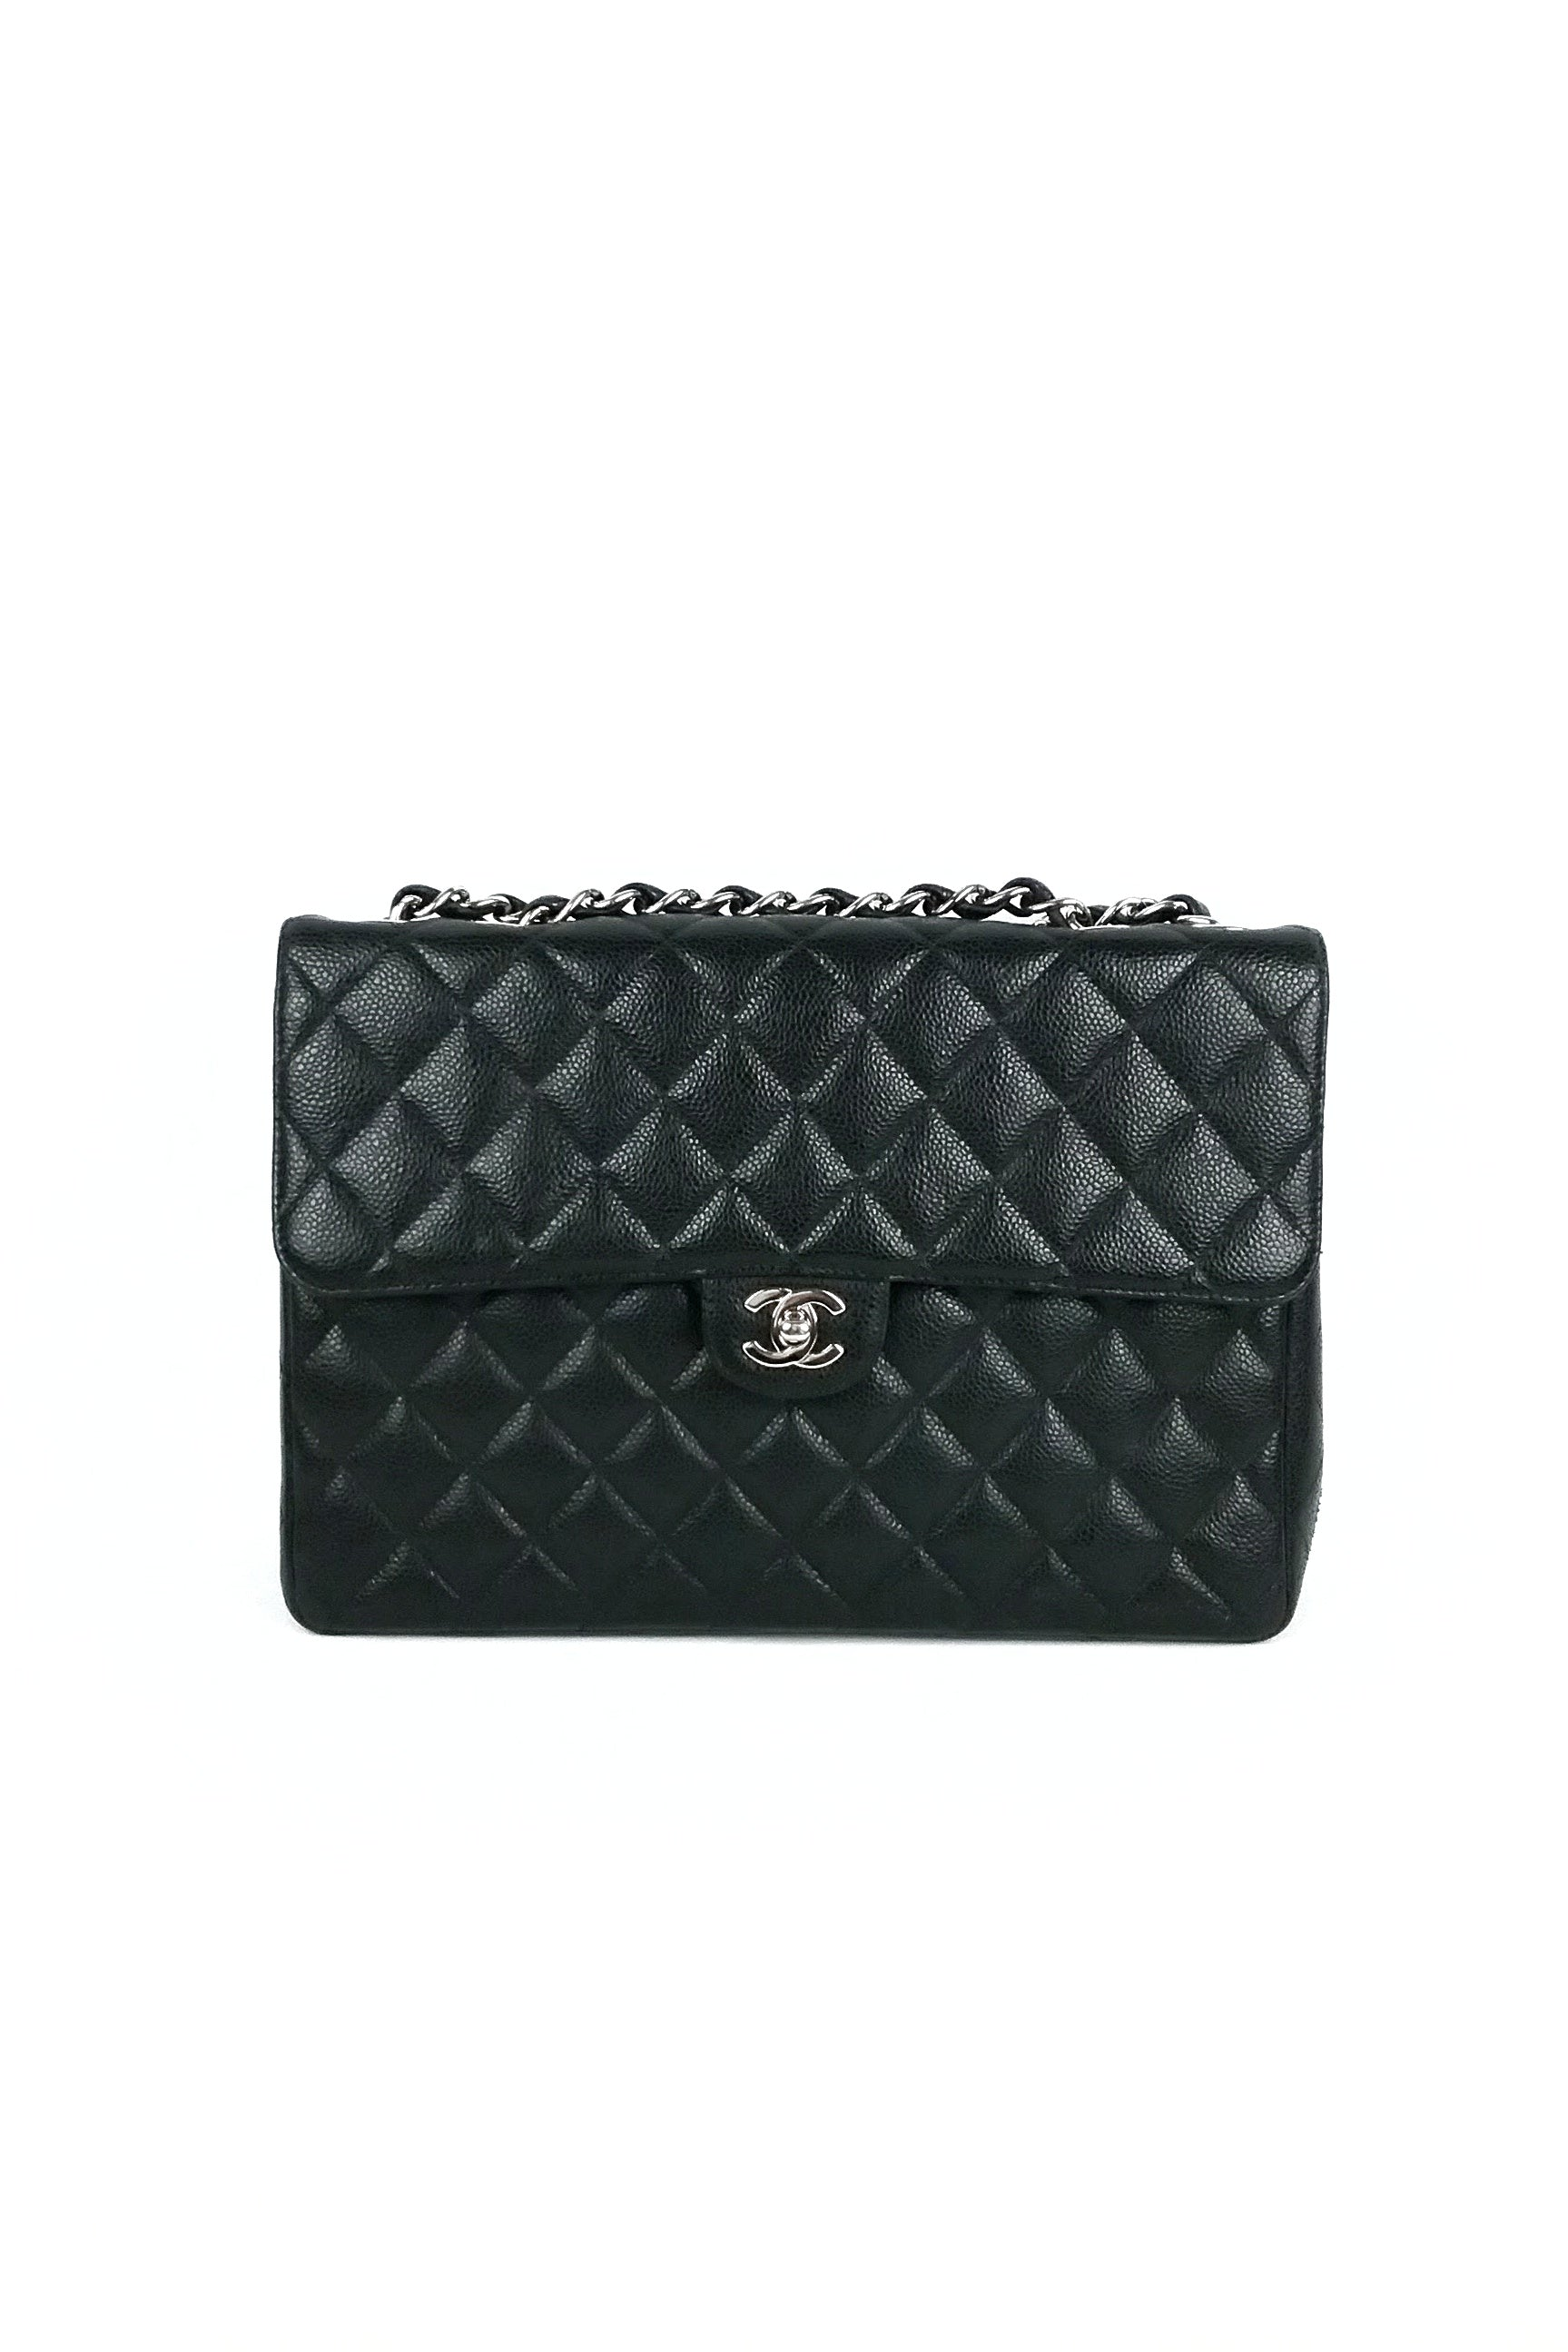 Black Caviar Jumbo Single Flap Bag - ON LAYAWAY